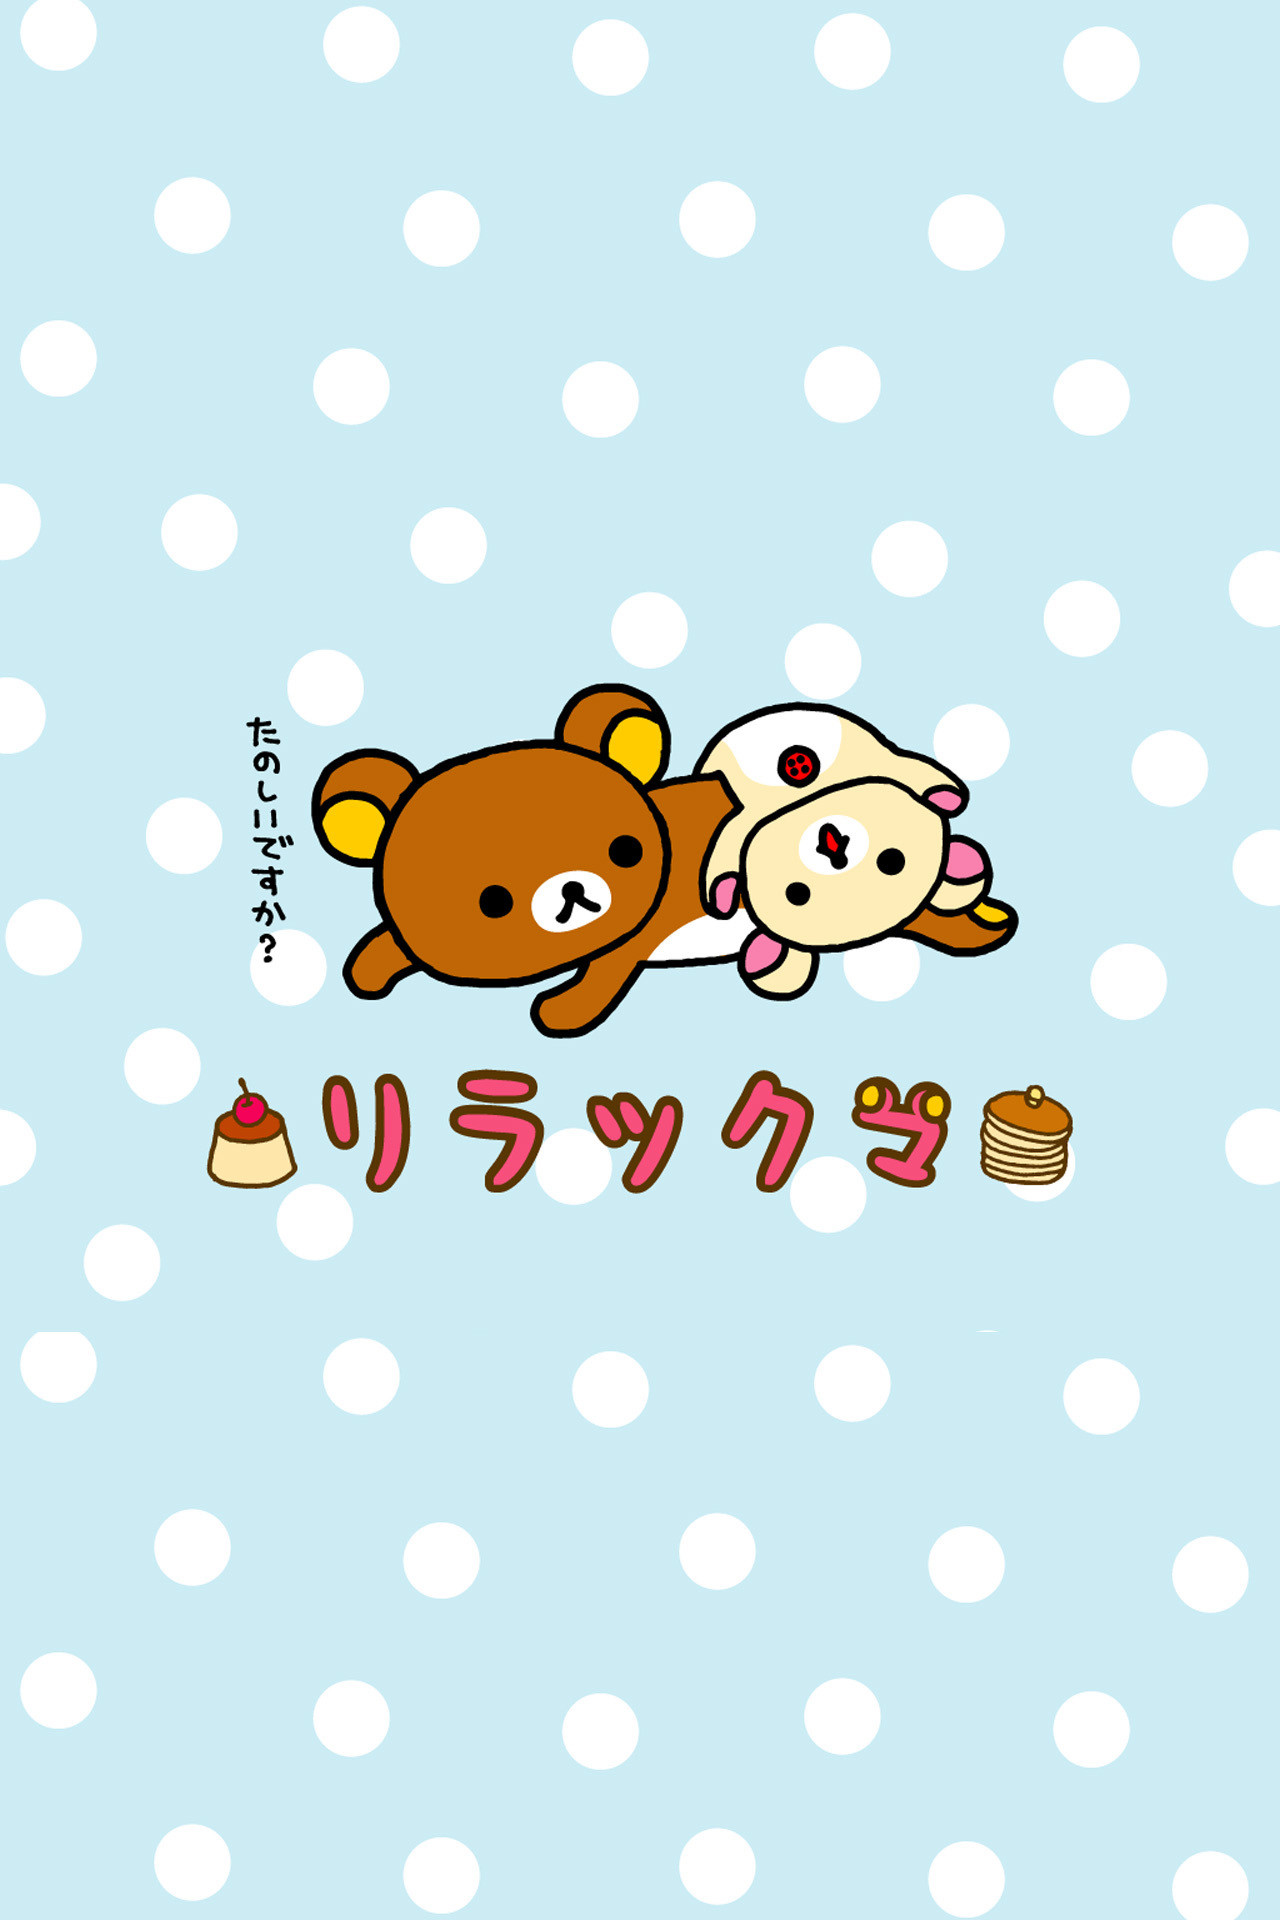 1280x1920 Cute and colorful Rilakkuma wallpapers to fit your iPhone iPhone iPhone  Galaxy and Galaxy Note